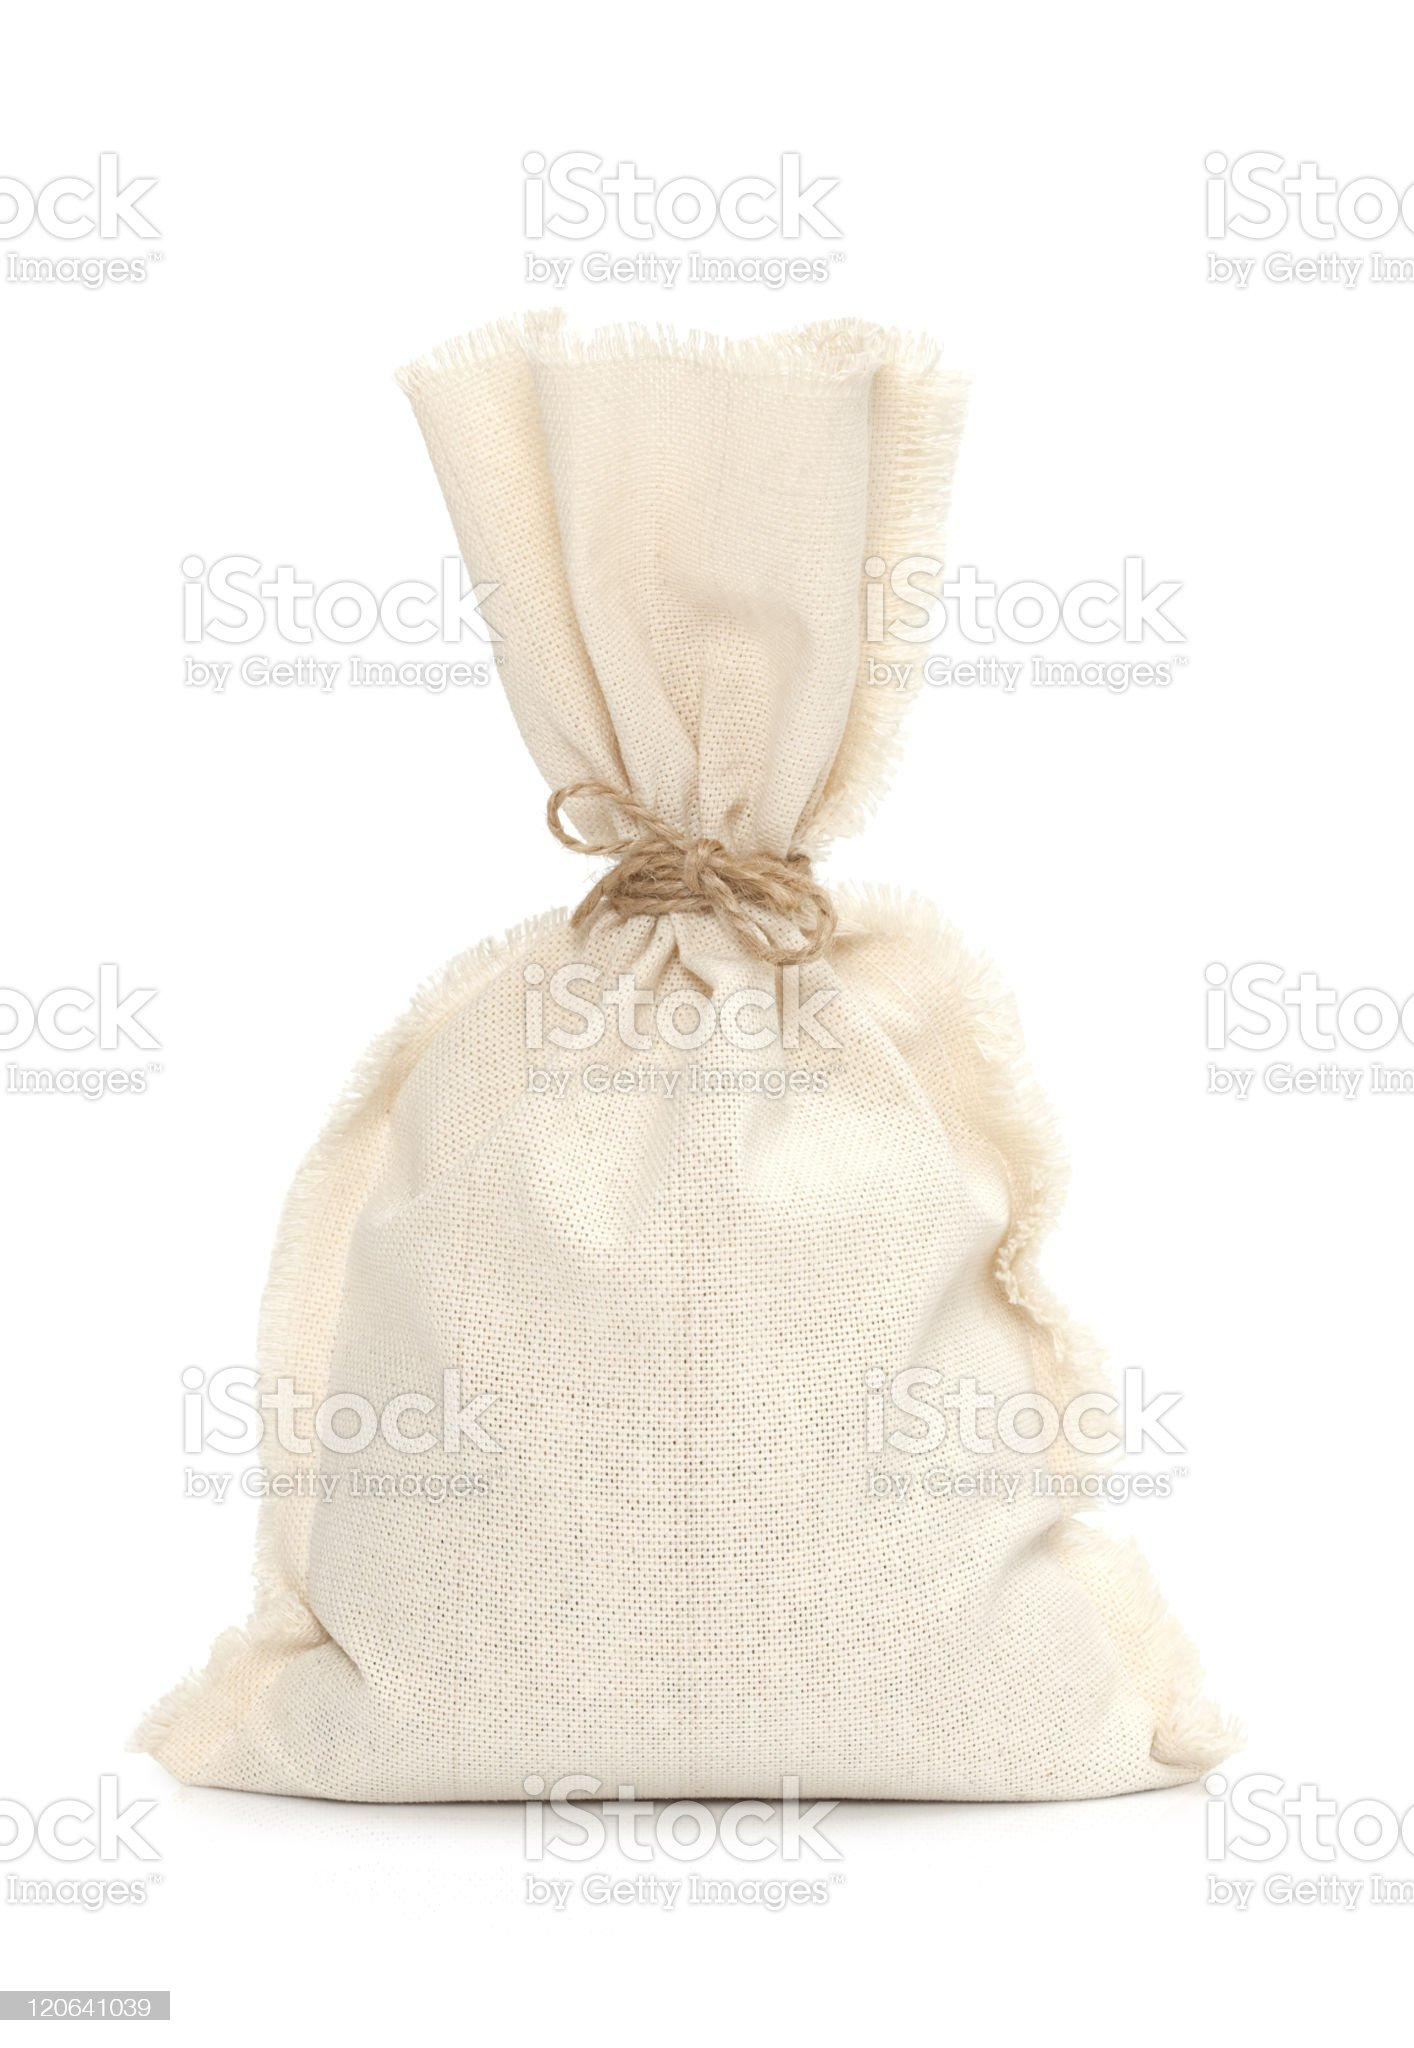 Burlap sack royalty-free stock photo